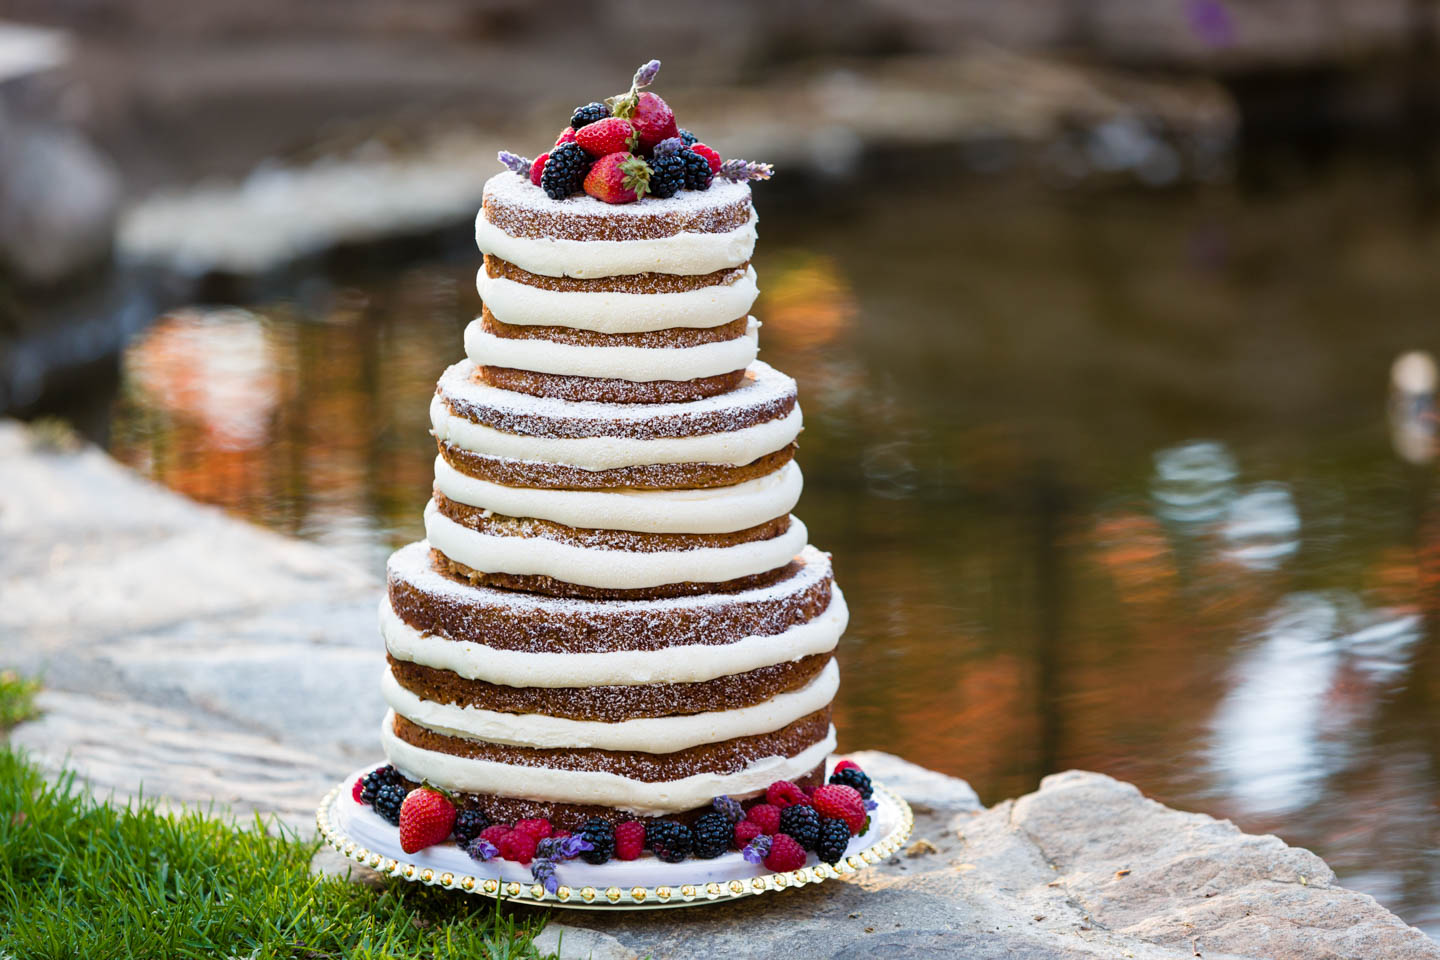 Naked wedding cake. I so wanted to eat this one.